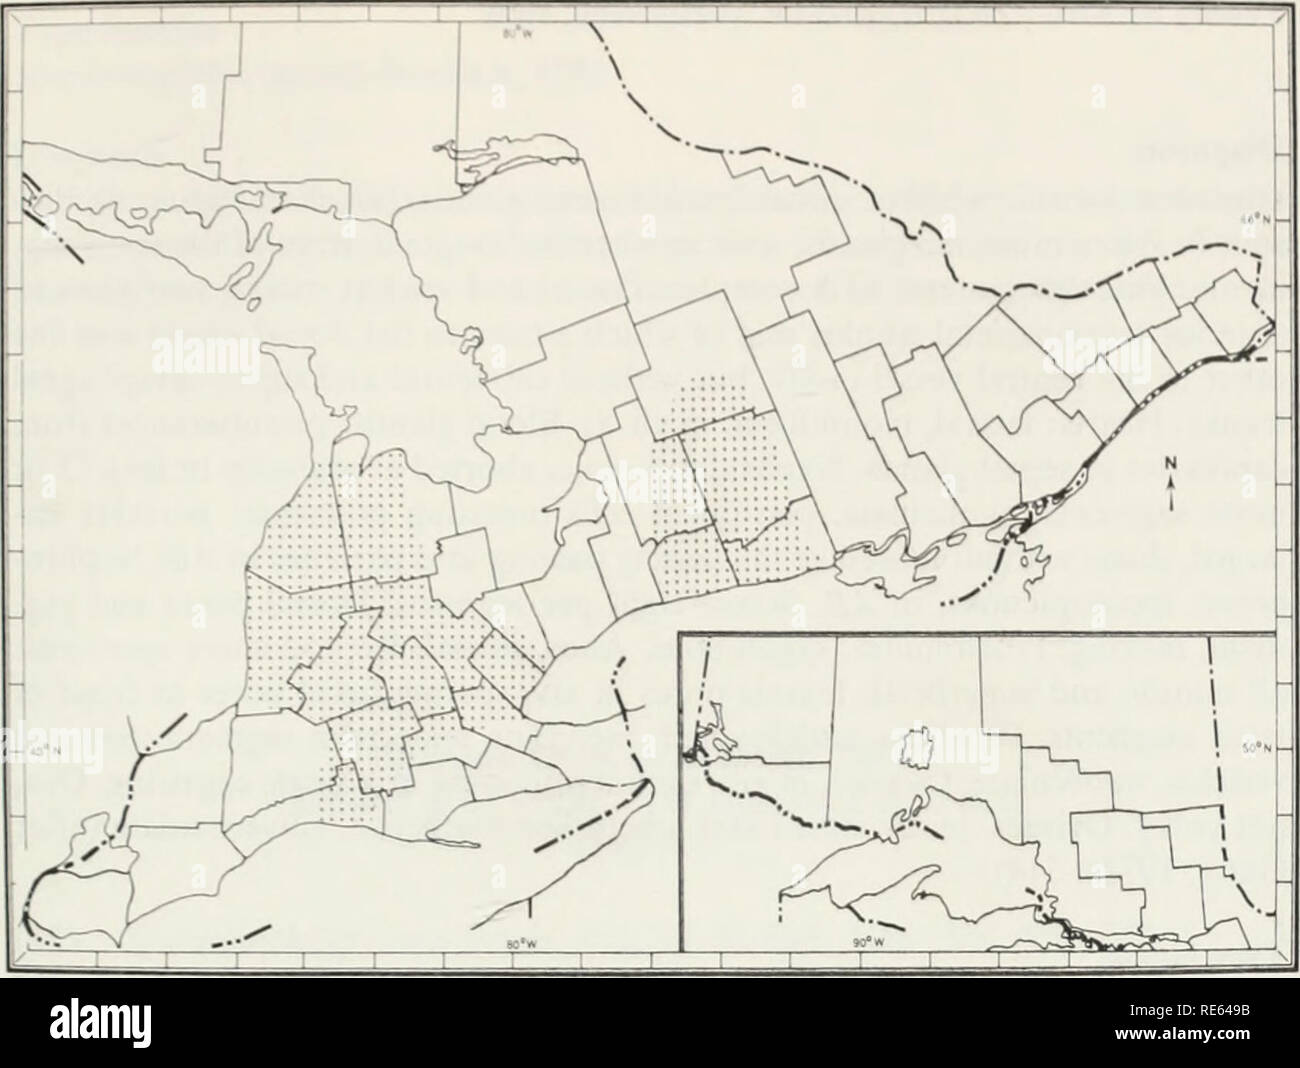 . The earthworms (lumbricidae and sparganophilidae) of Ontario. Lumbricidae; Worms. Fig. 39 The known Ontario distribution of Octolasion tyrtaeum. LAND CO. *Hwy 45. 4.84 km n of Baltimore, under logs, 28 Apr 72, JWR, 1-4-1. OXFORD CO. •Hwy 97, Washington, w.e., under logs, 3 May 72, JWR, 0-1-3. PEEL CO. *Hwy 5, .81 km e of Dixie Rd. under logs. 29 Apr 72, JWR. 0-1-1. PETERBOROUGH CO. *Hwy 28, Lakefield College, under logs near waterfront, 27 Apr 72, JWR & CWR, 4-5-8. VICTORIA CO. *Hwy 7, 7.26 km e of Hwj 35. under log, 26 Apr 72, JWR, 0-3-1. WATERLOO CO. *Hwy 24A, 11.45 km n of Pans, un- d - Stock Image